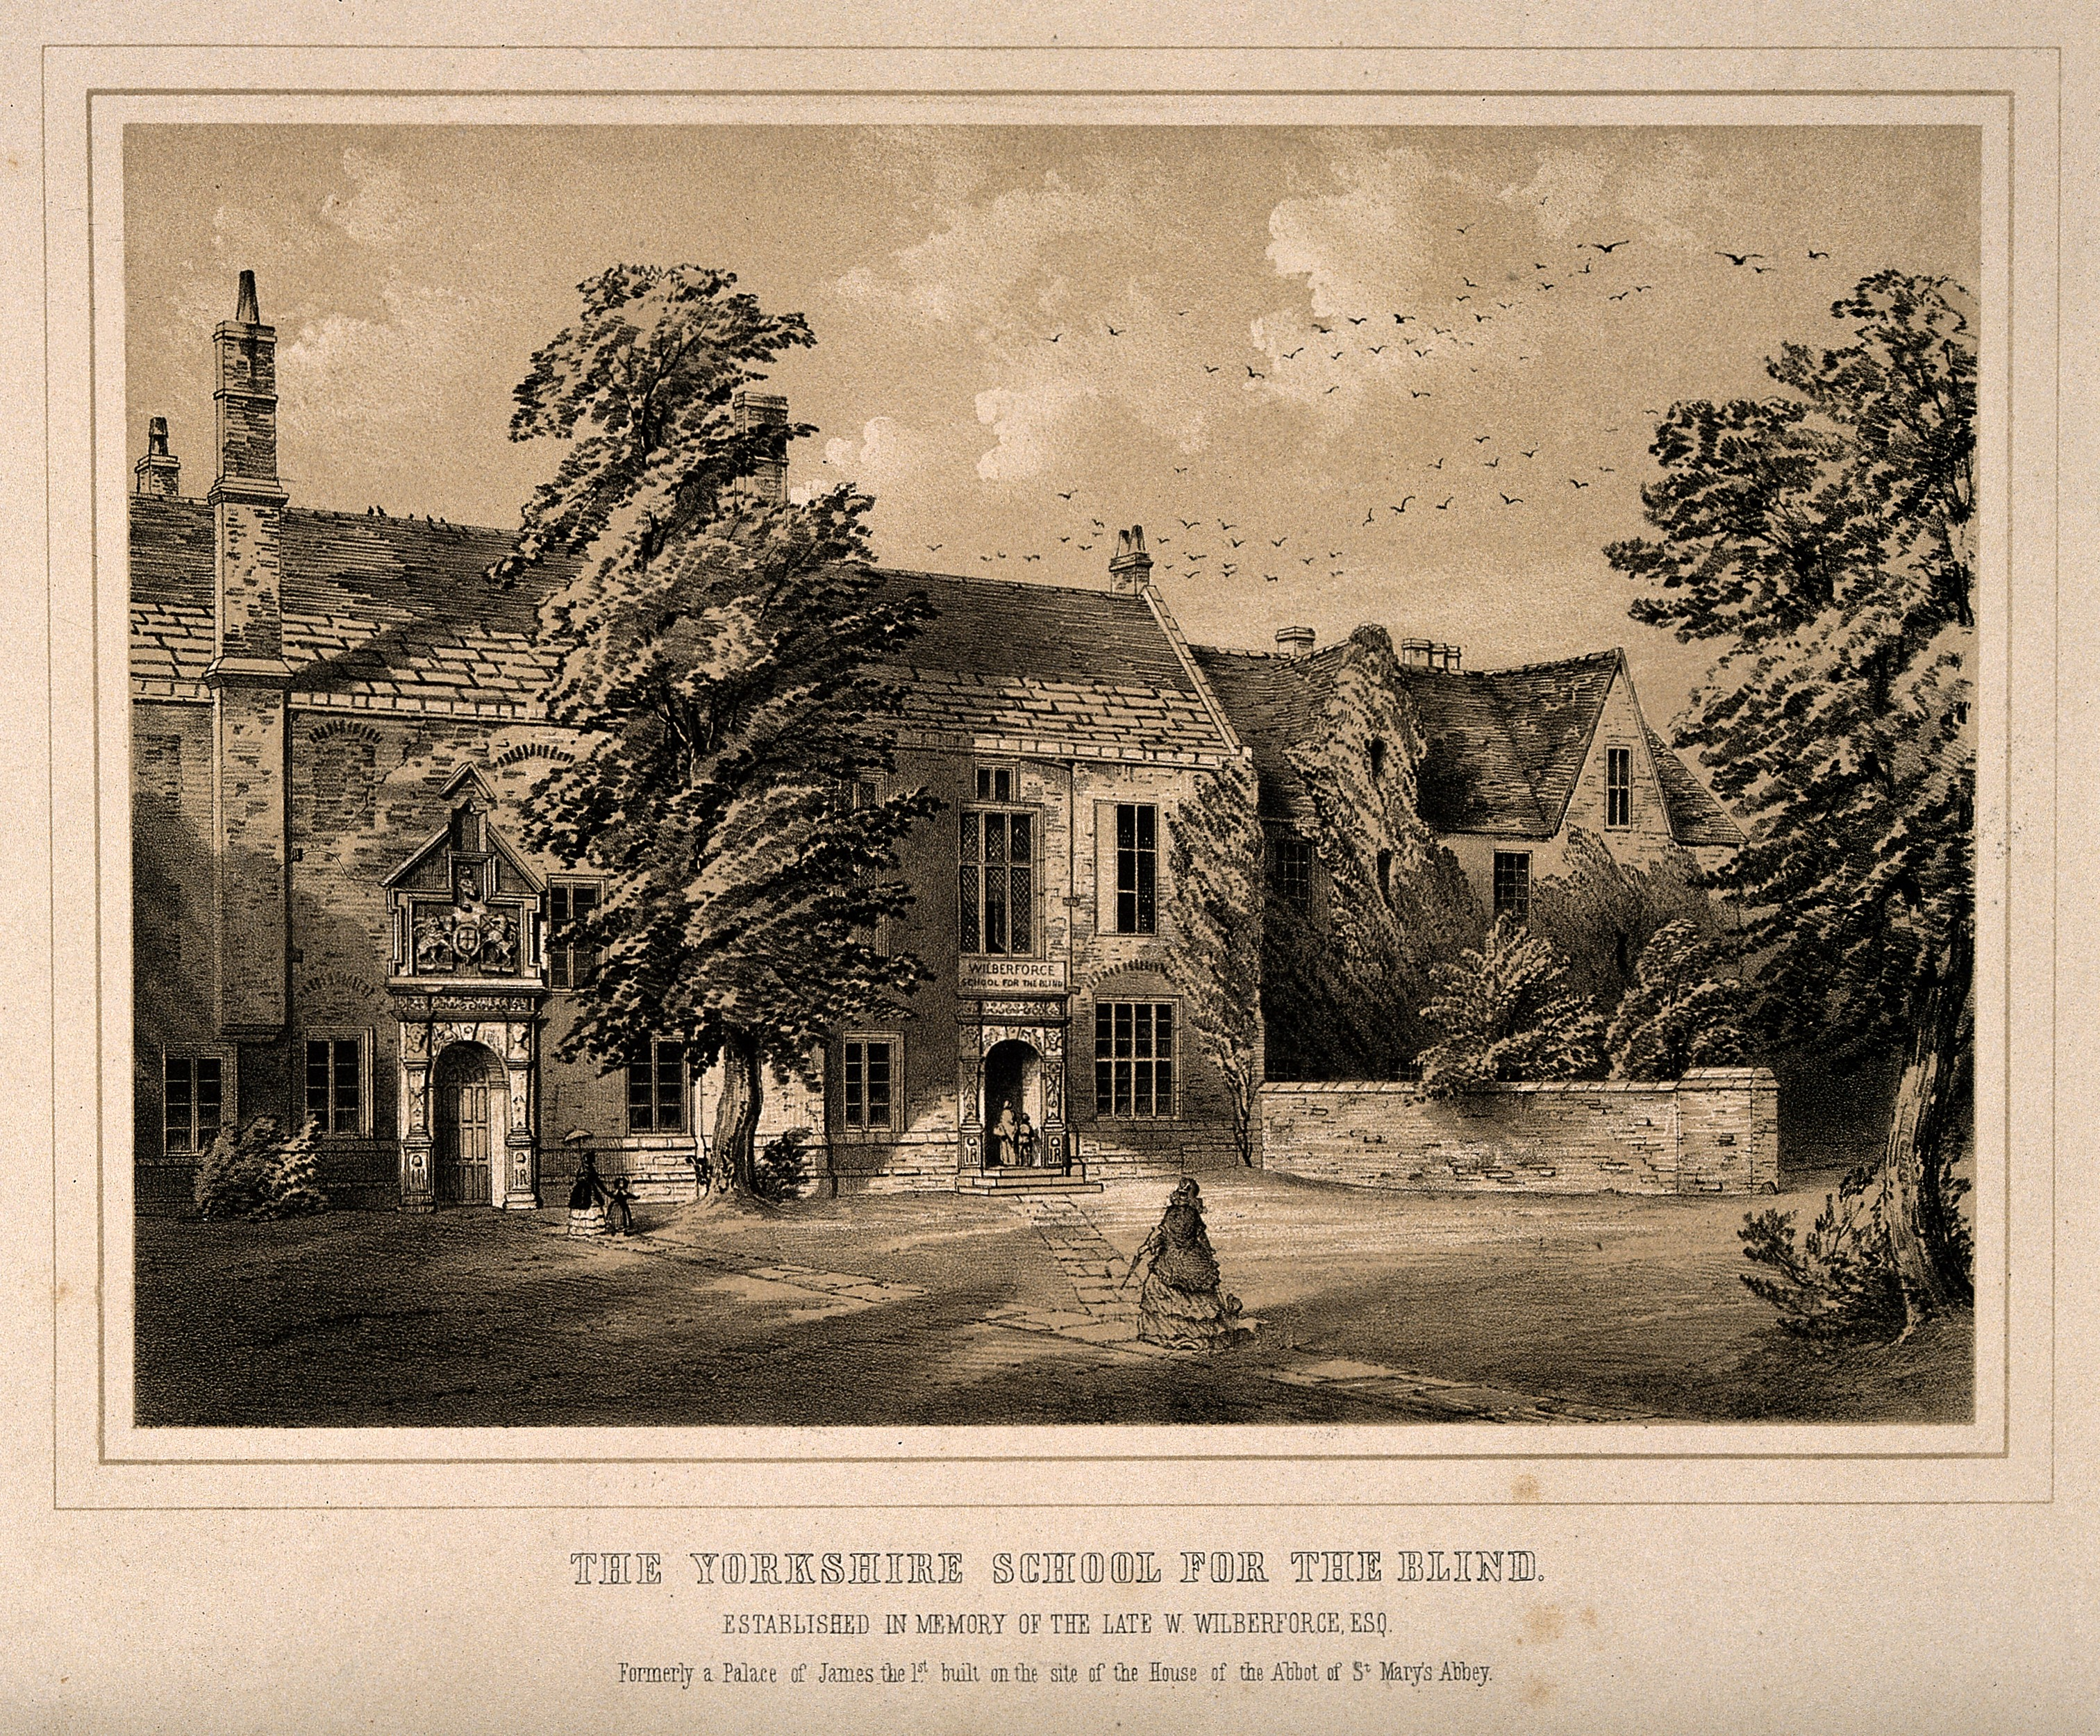 File Yorkshire School for the Blind York England Tinted lithog